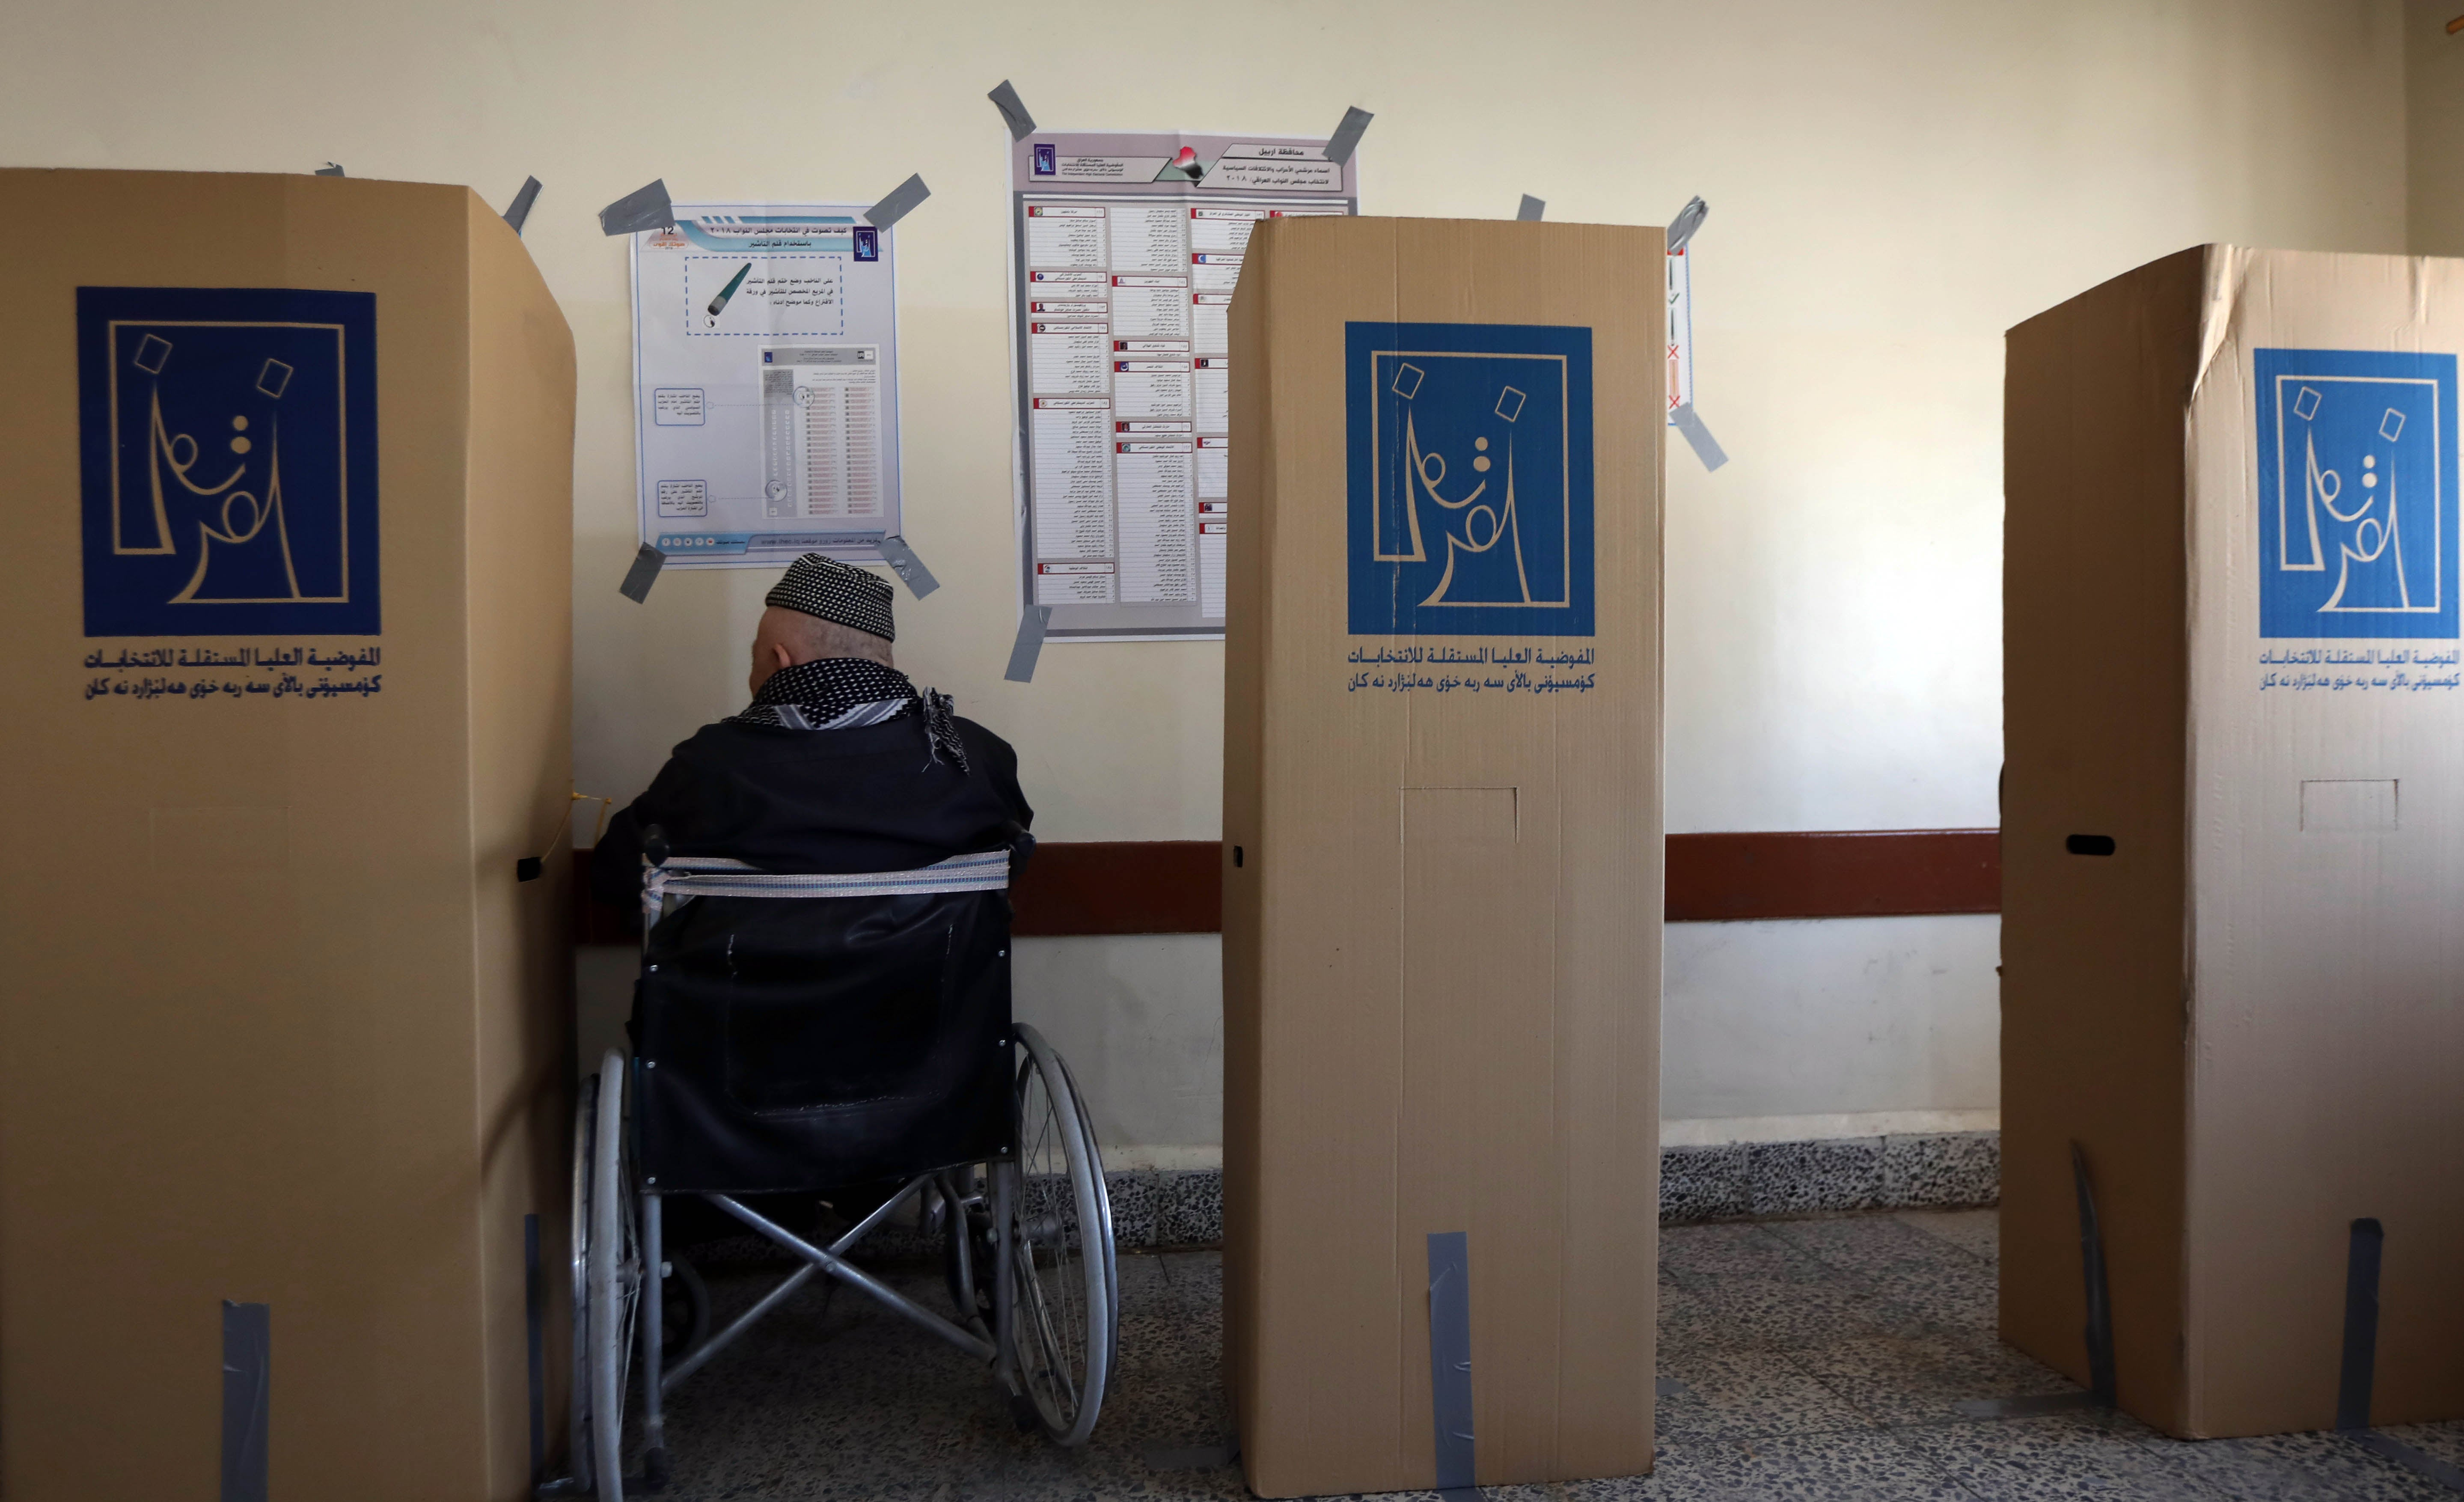 Iraq: People with Disabilities Face Election Barriers